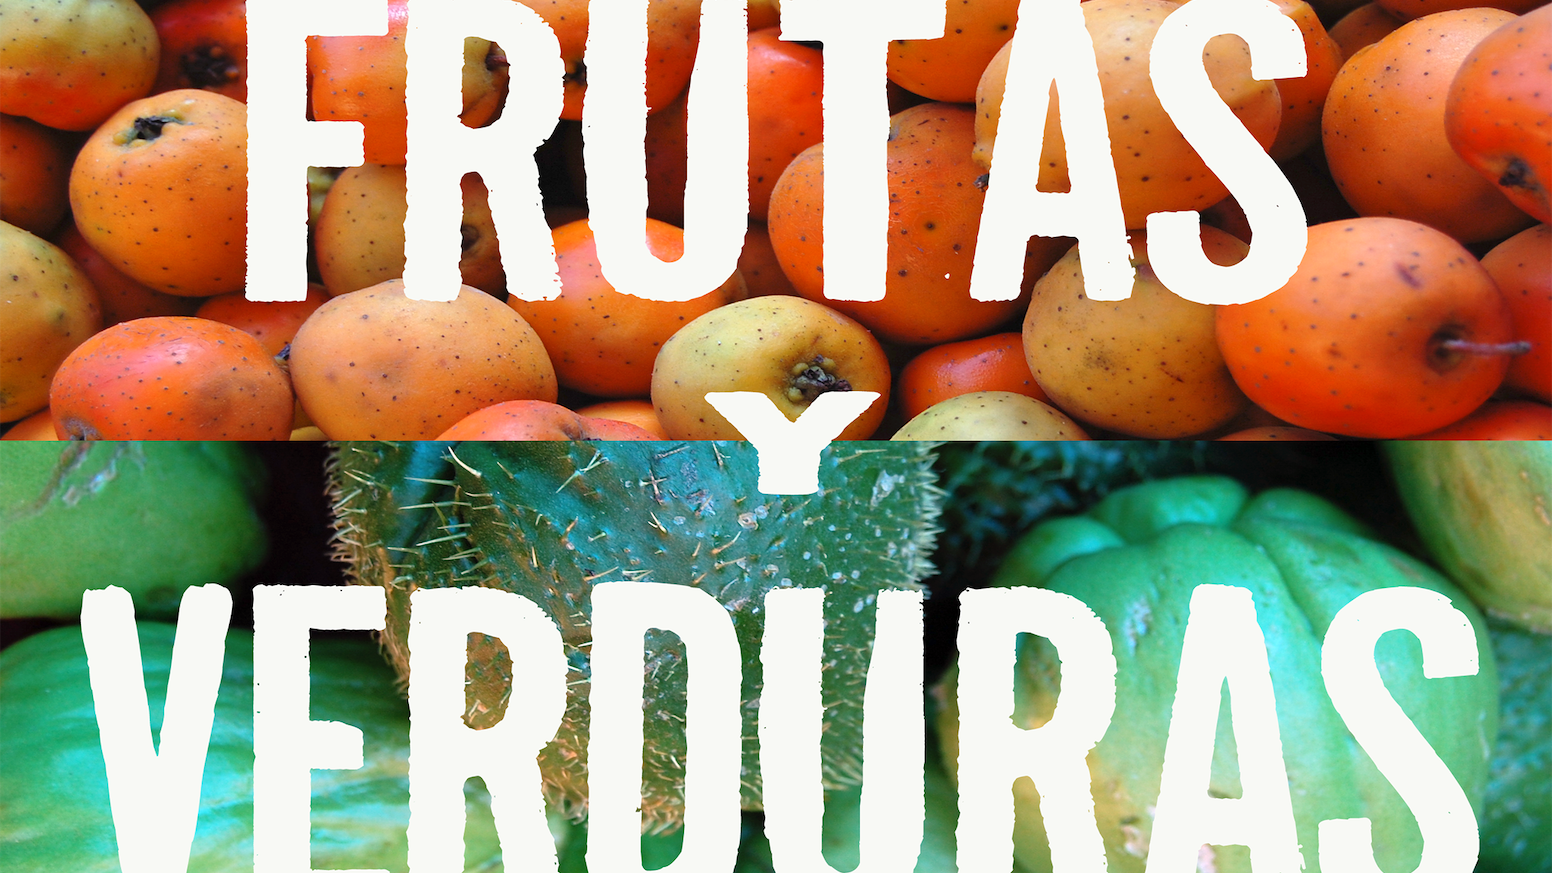 Frutas Y Verduras Guide To The Fresh Taste Of Mexico By Margret